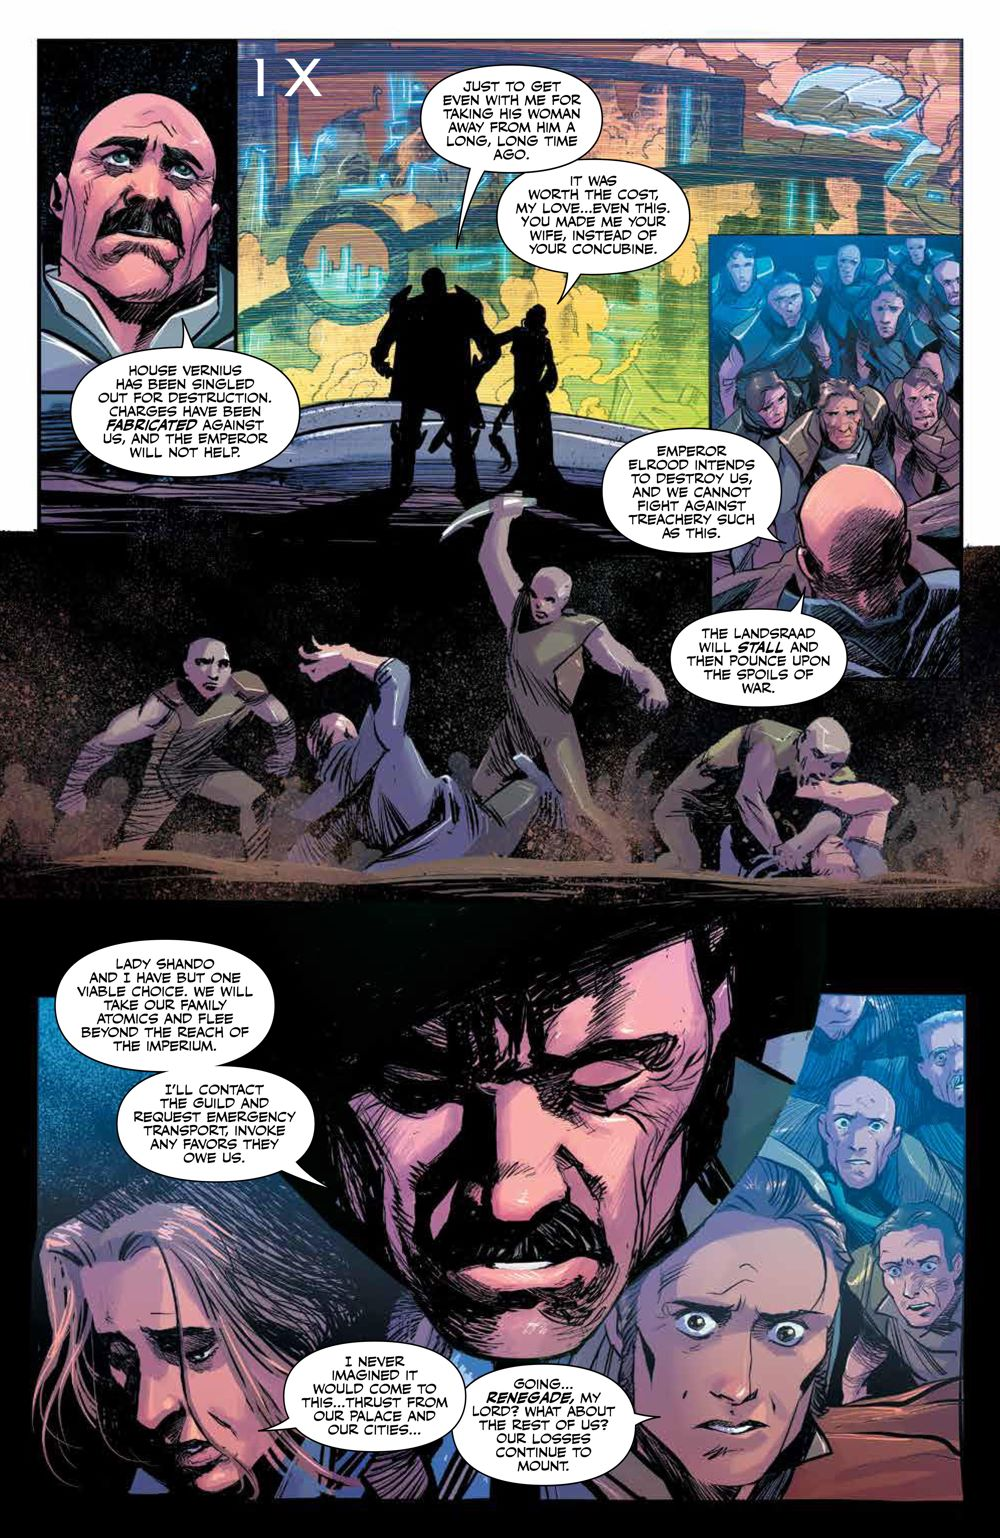 Dune_HouseAtreides_006_PRESS_8 ComicList Previews: DUNE HOUSE ATREIDES #6 (OF 12)